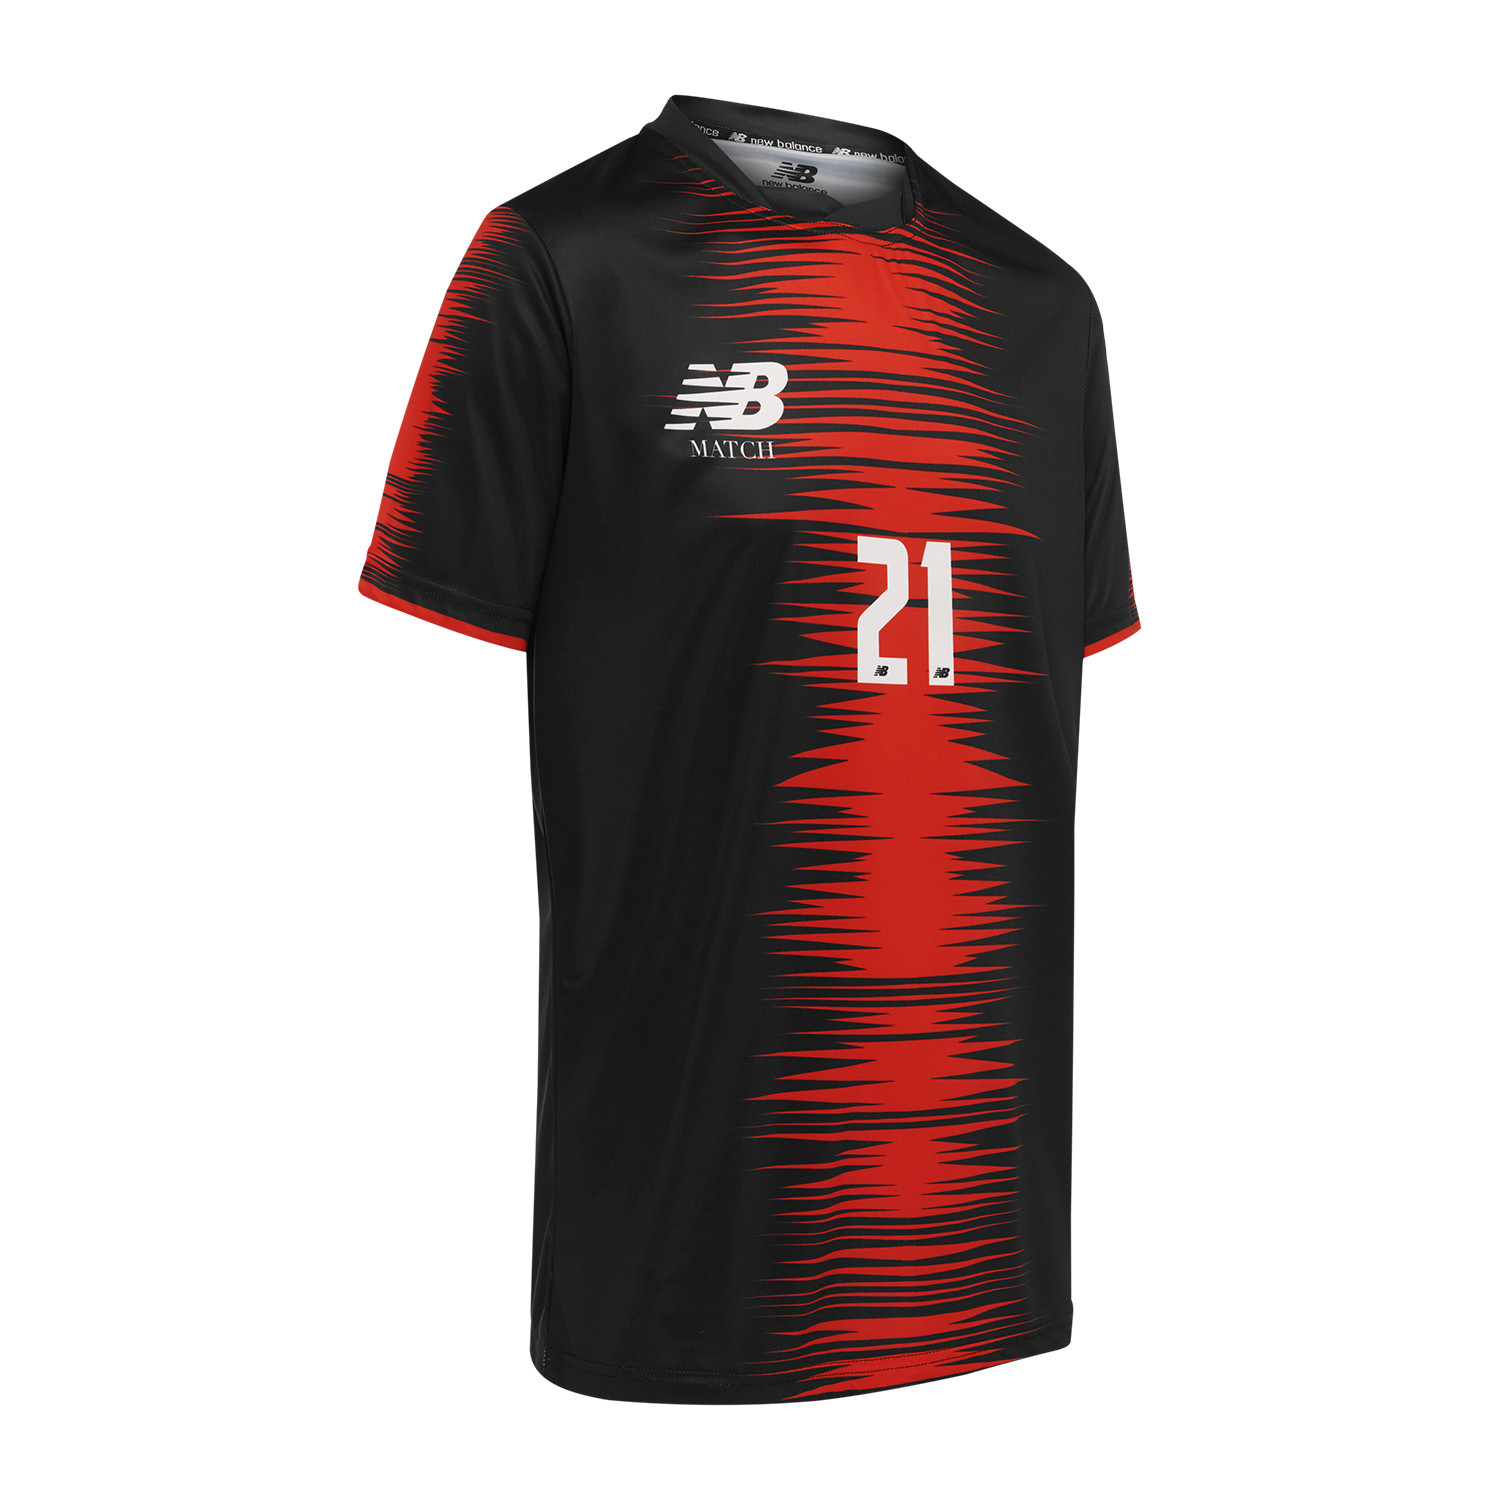 Match Football Jersey in NB-Dry